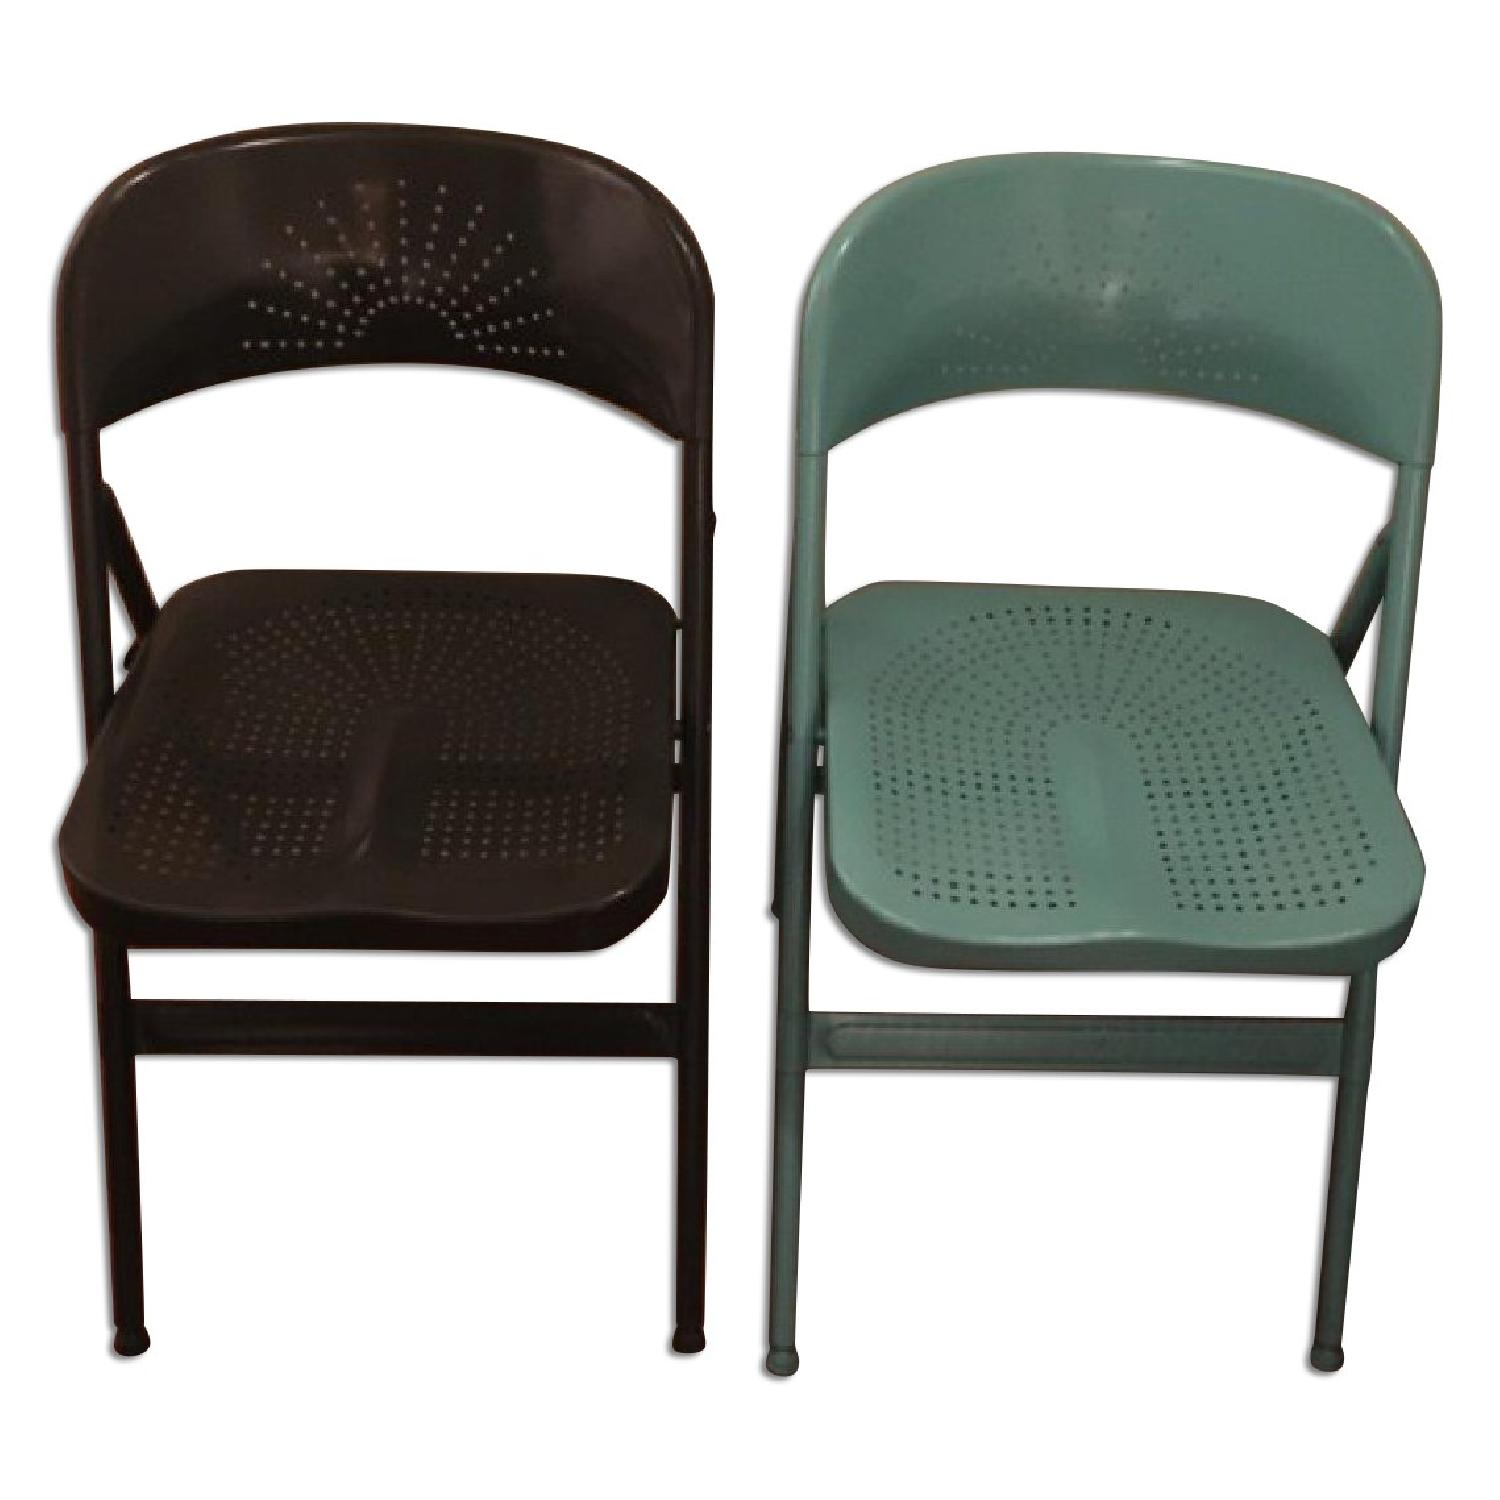 Folding Chair in Dark Grey & Turquoise - image-0